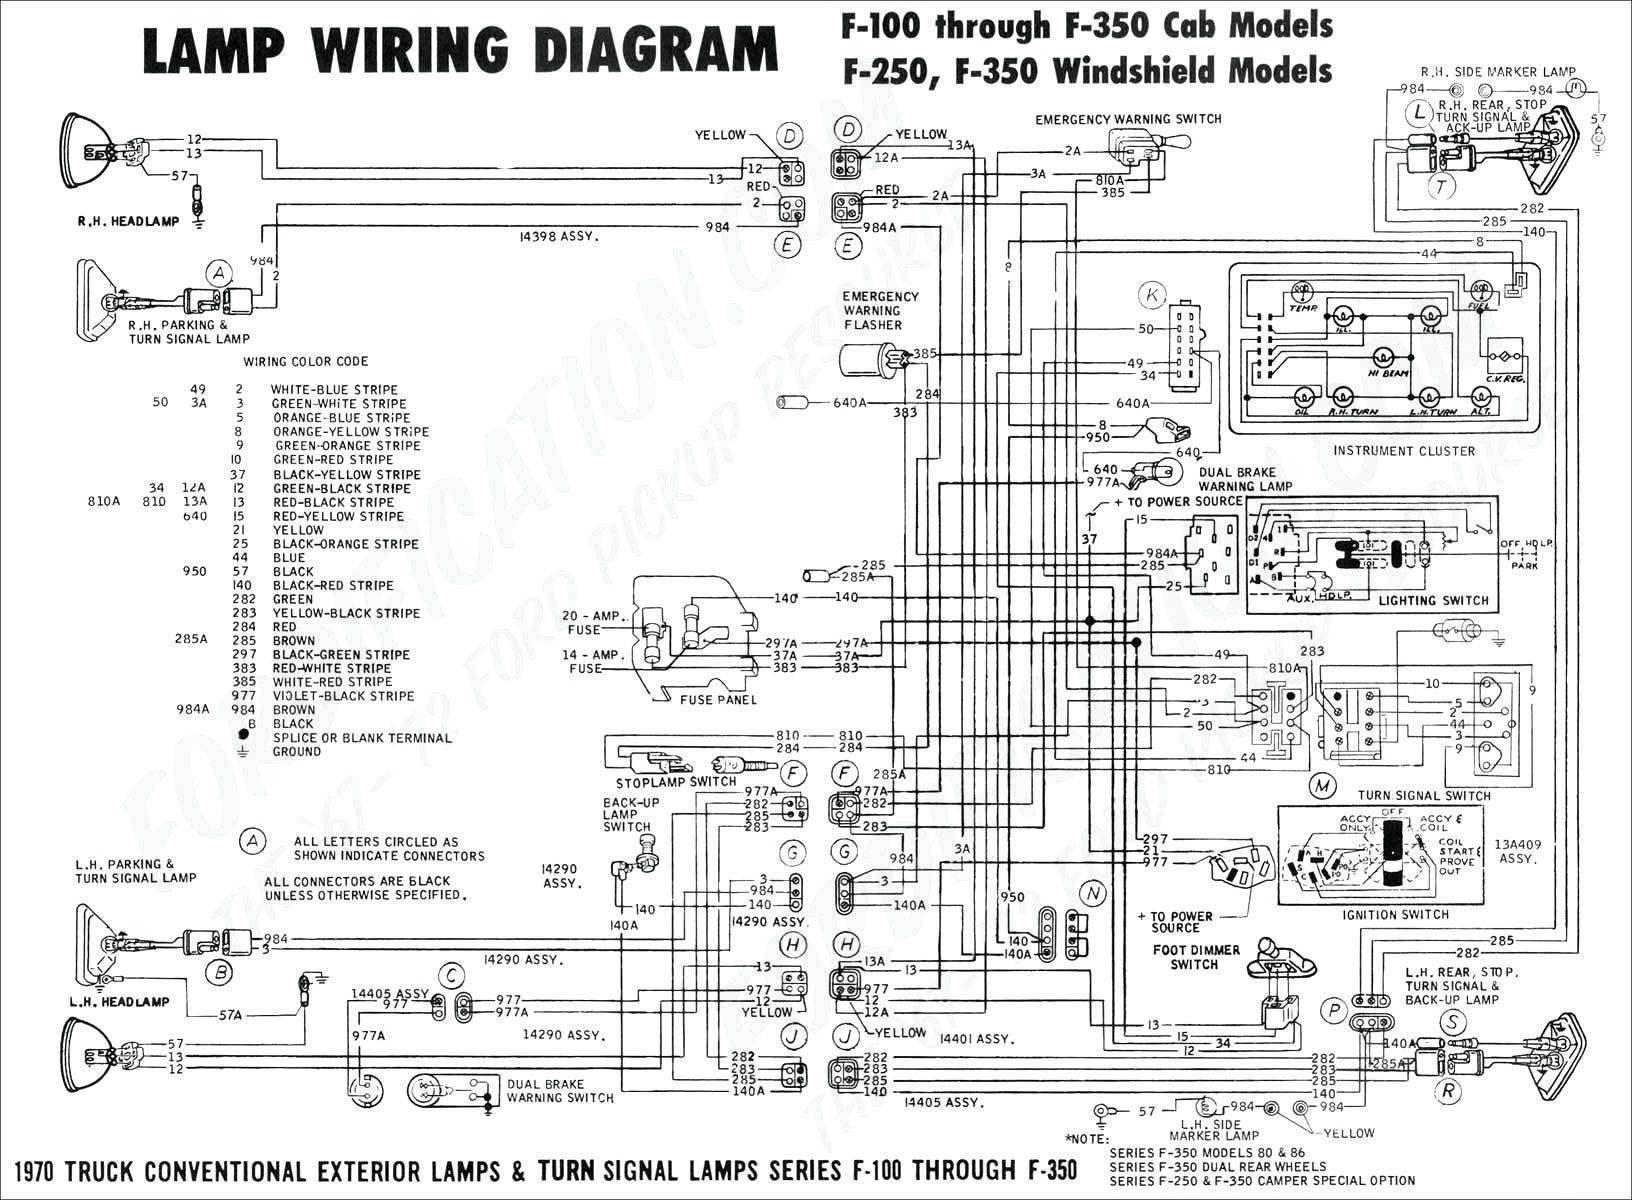 Ford F150 Parts Diagram 2005 Chevy Silverado Ignition Wiring Diagram Fresh Chevy Silverado Of Ford F150 Parts Diagram